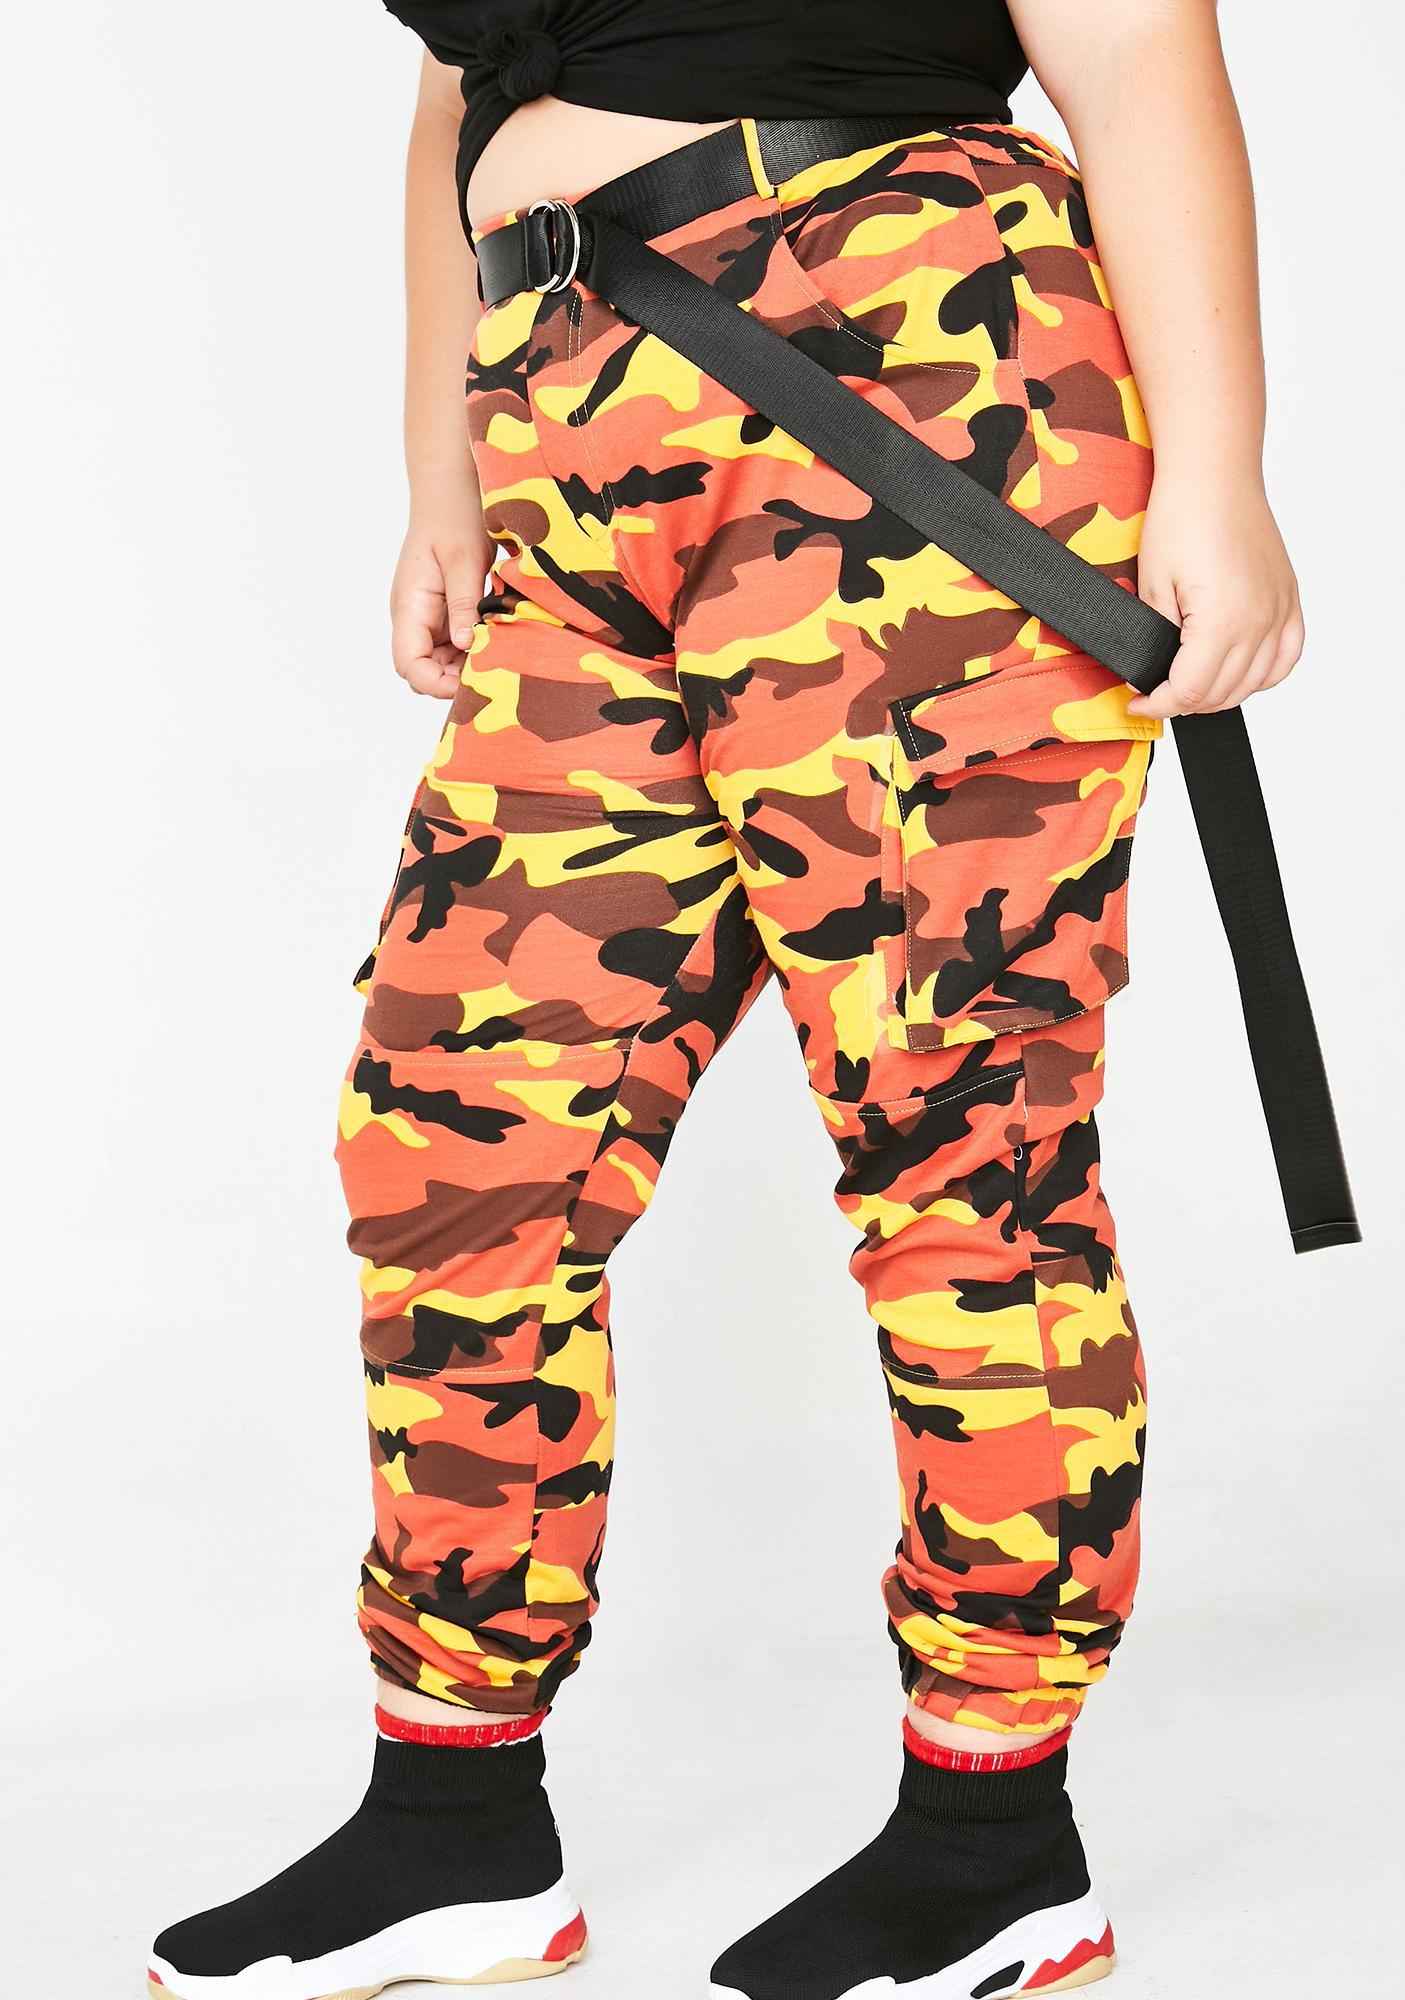 Vibrant Empowered Babe Camo Pants